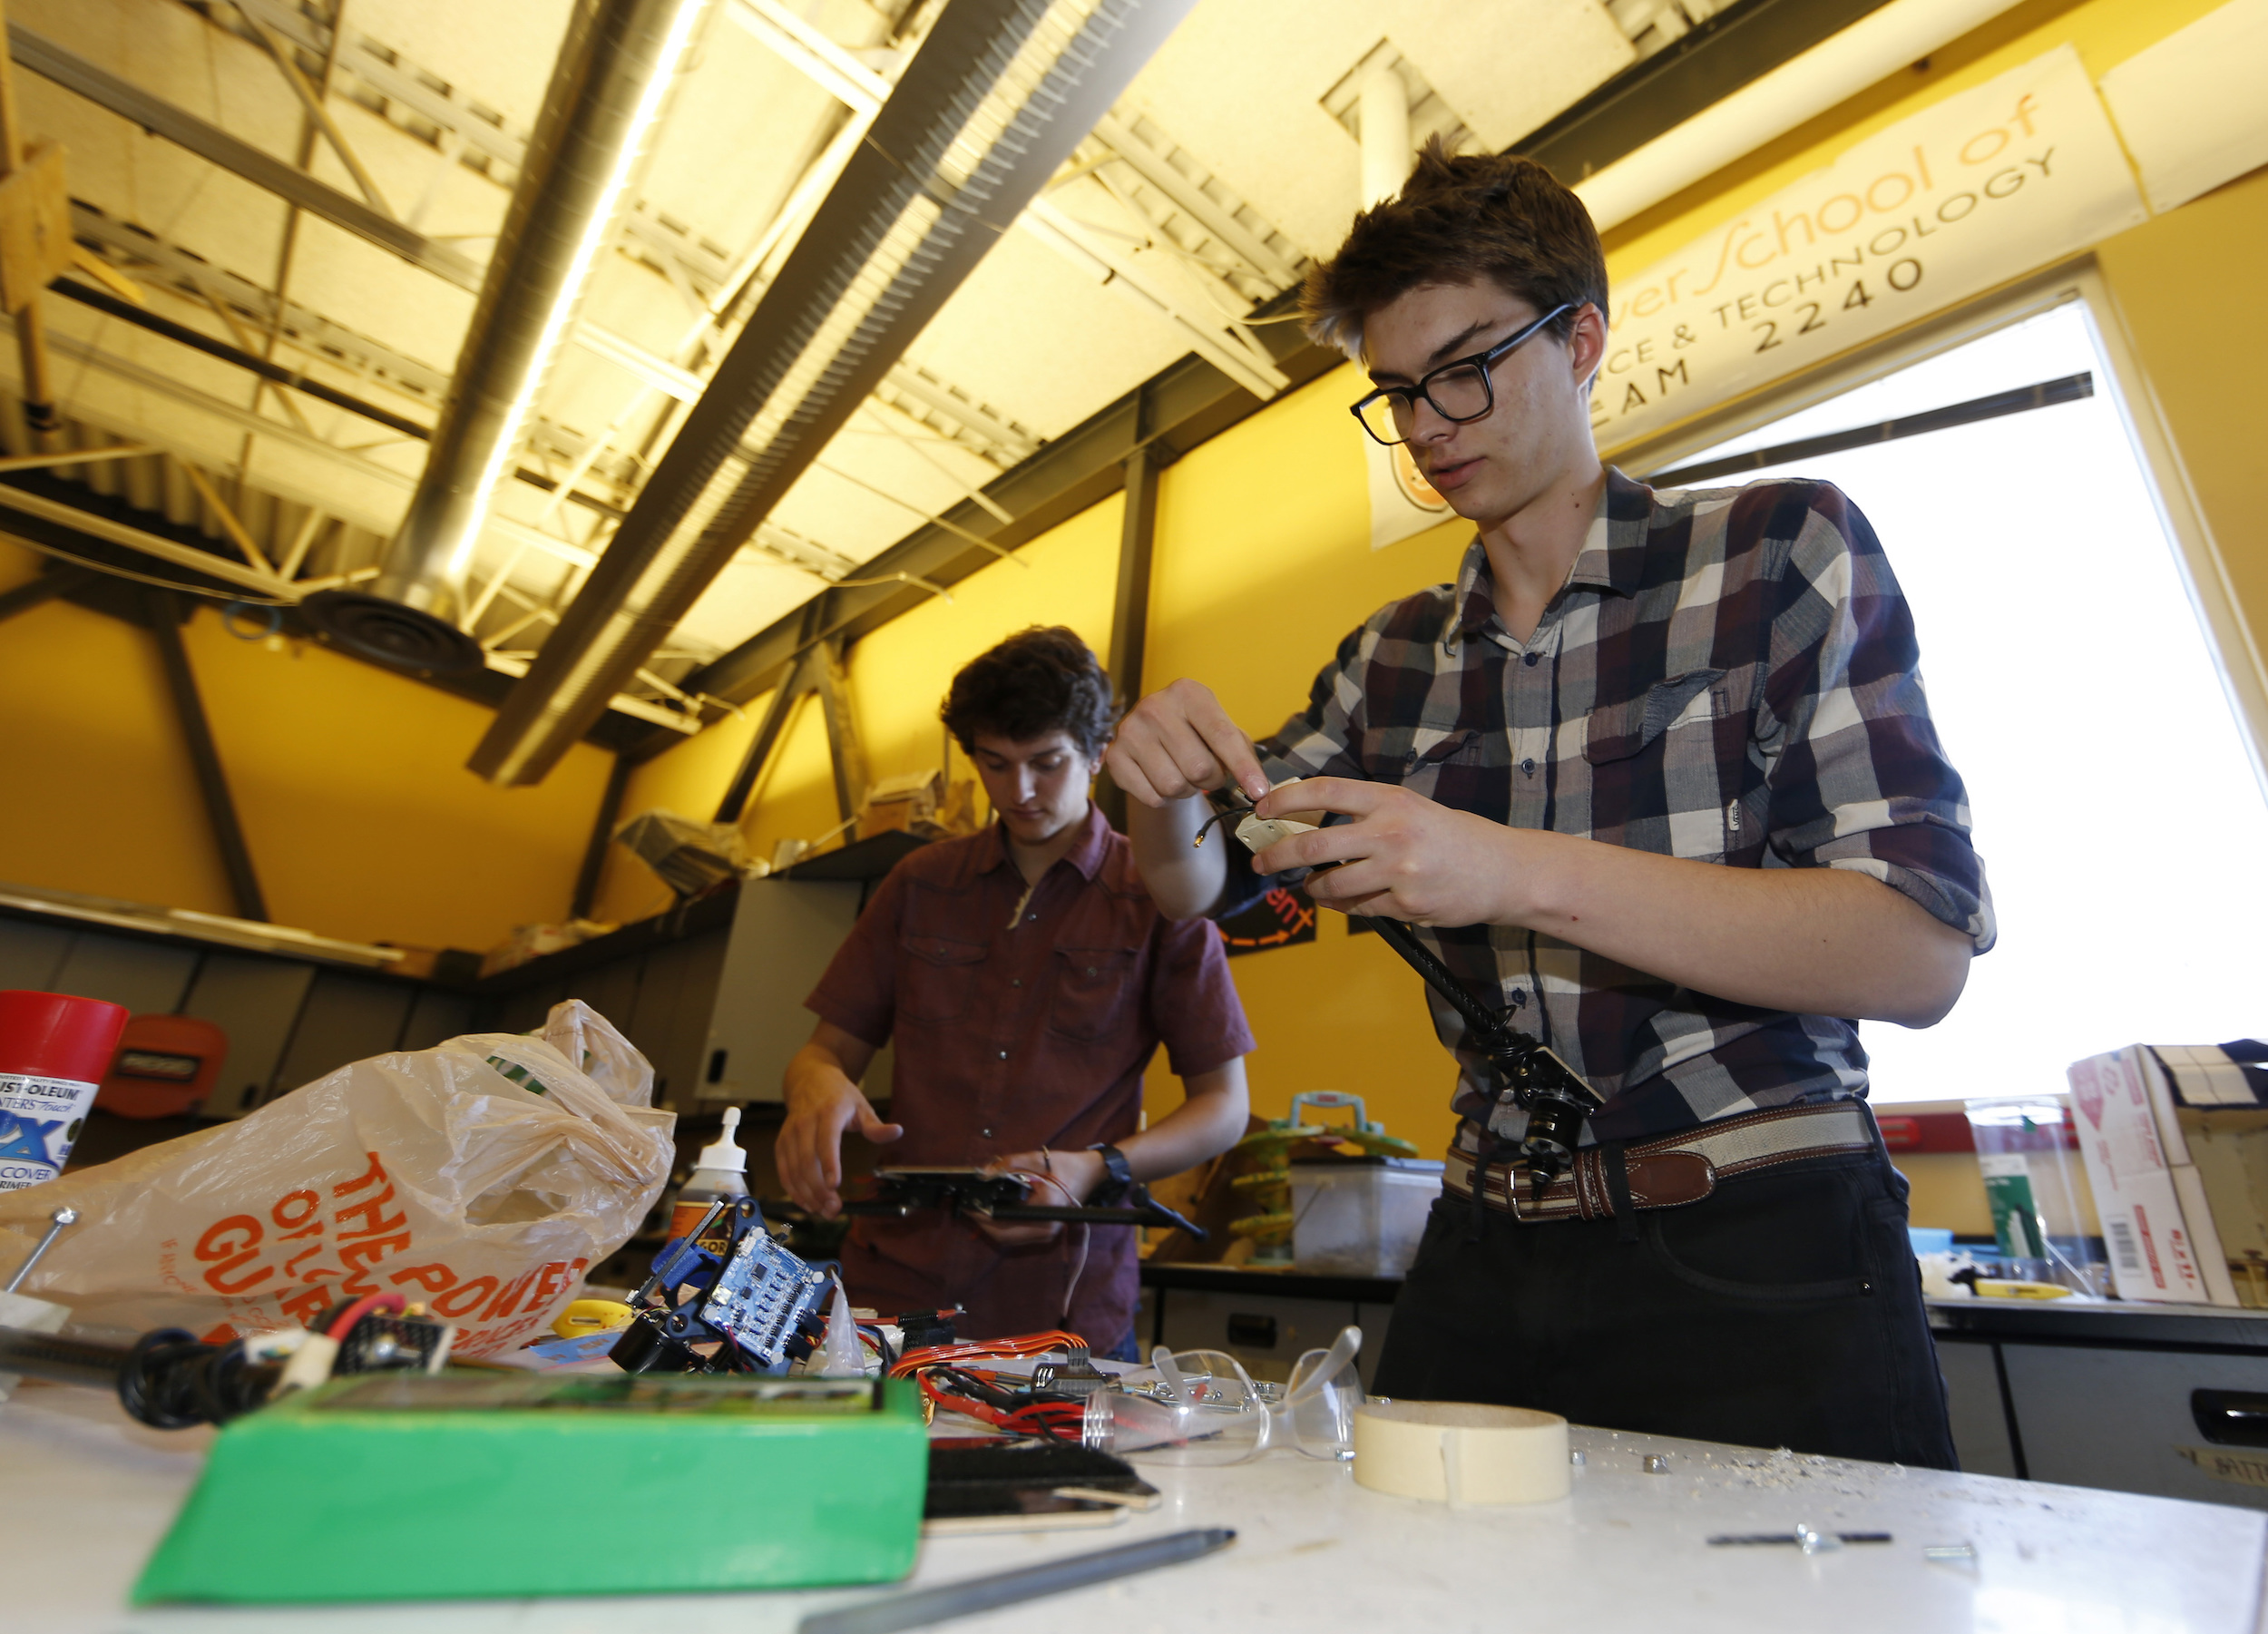 In this photo taken Friday, April 22, 2016, Nathan Lapore, right, and Max Alger-Meyer work on a drone at DSST Stapleton in Denver. Alger-Meyer, a Denver teen who visited Rwanda's Akagera National Park last summer, had an idea he thought would make the rangers' job easier: a drone. He and a friend have built one to donate to the park.